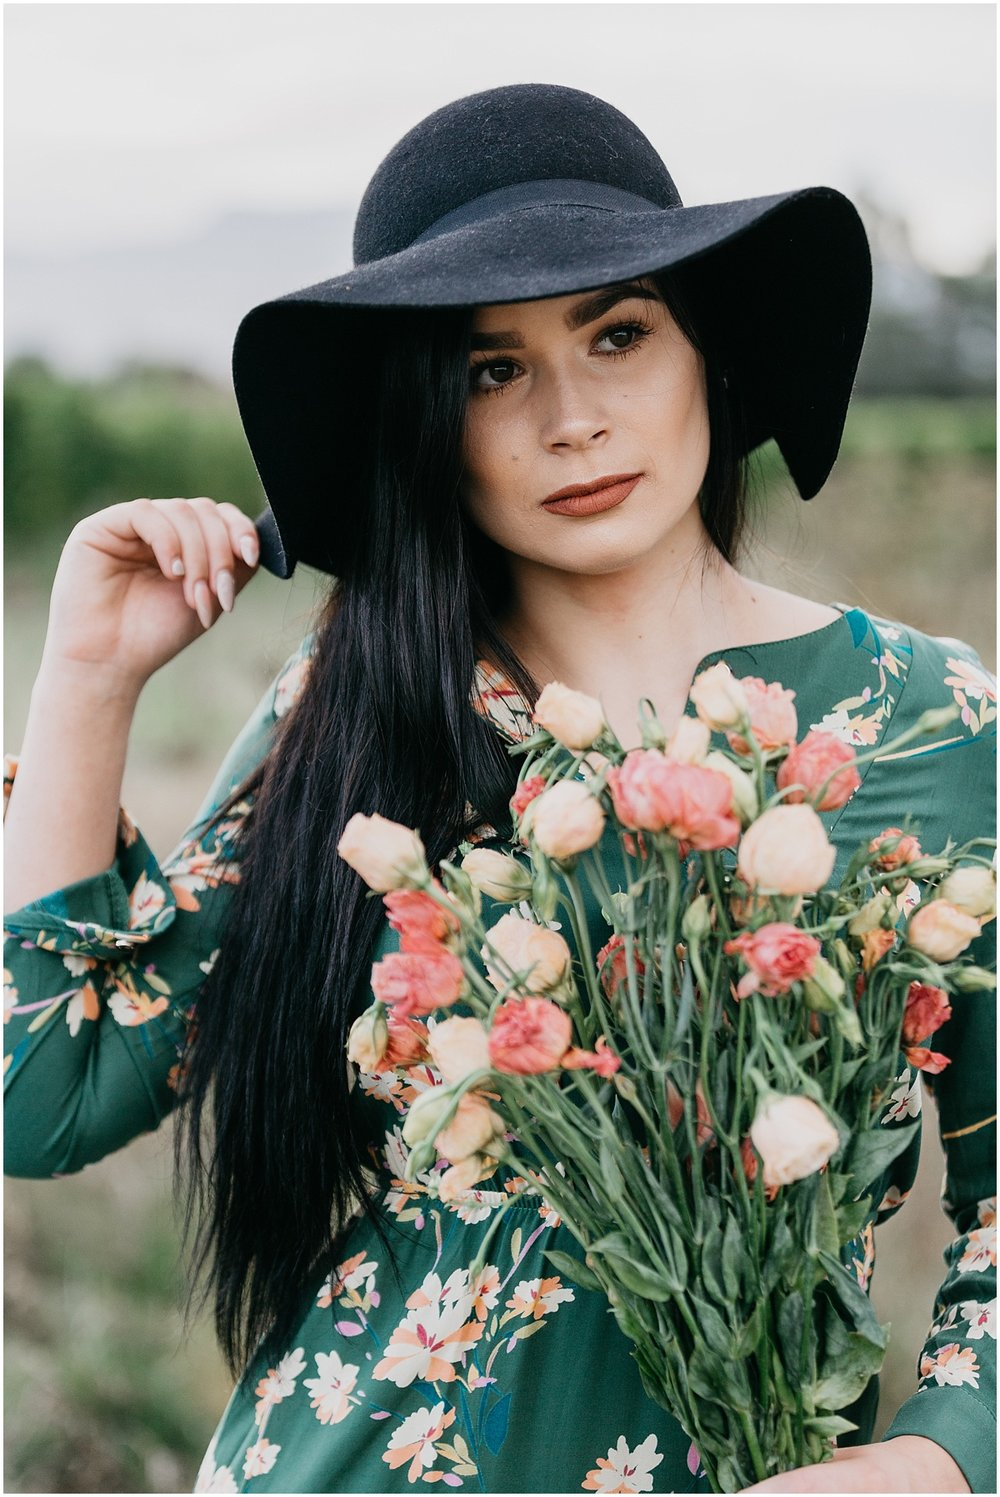 Woman in green dress holding black hat and flowers